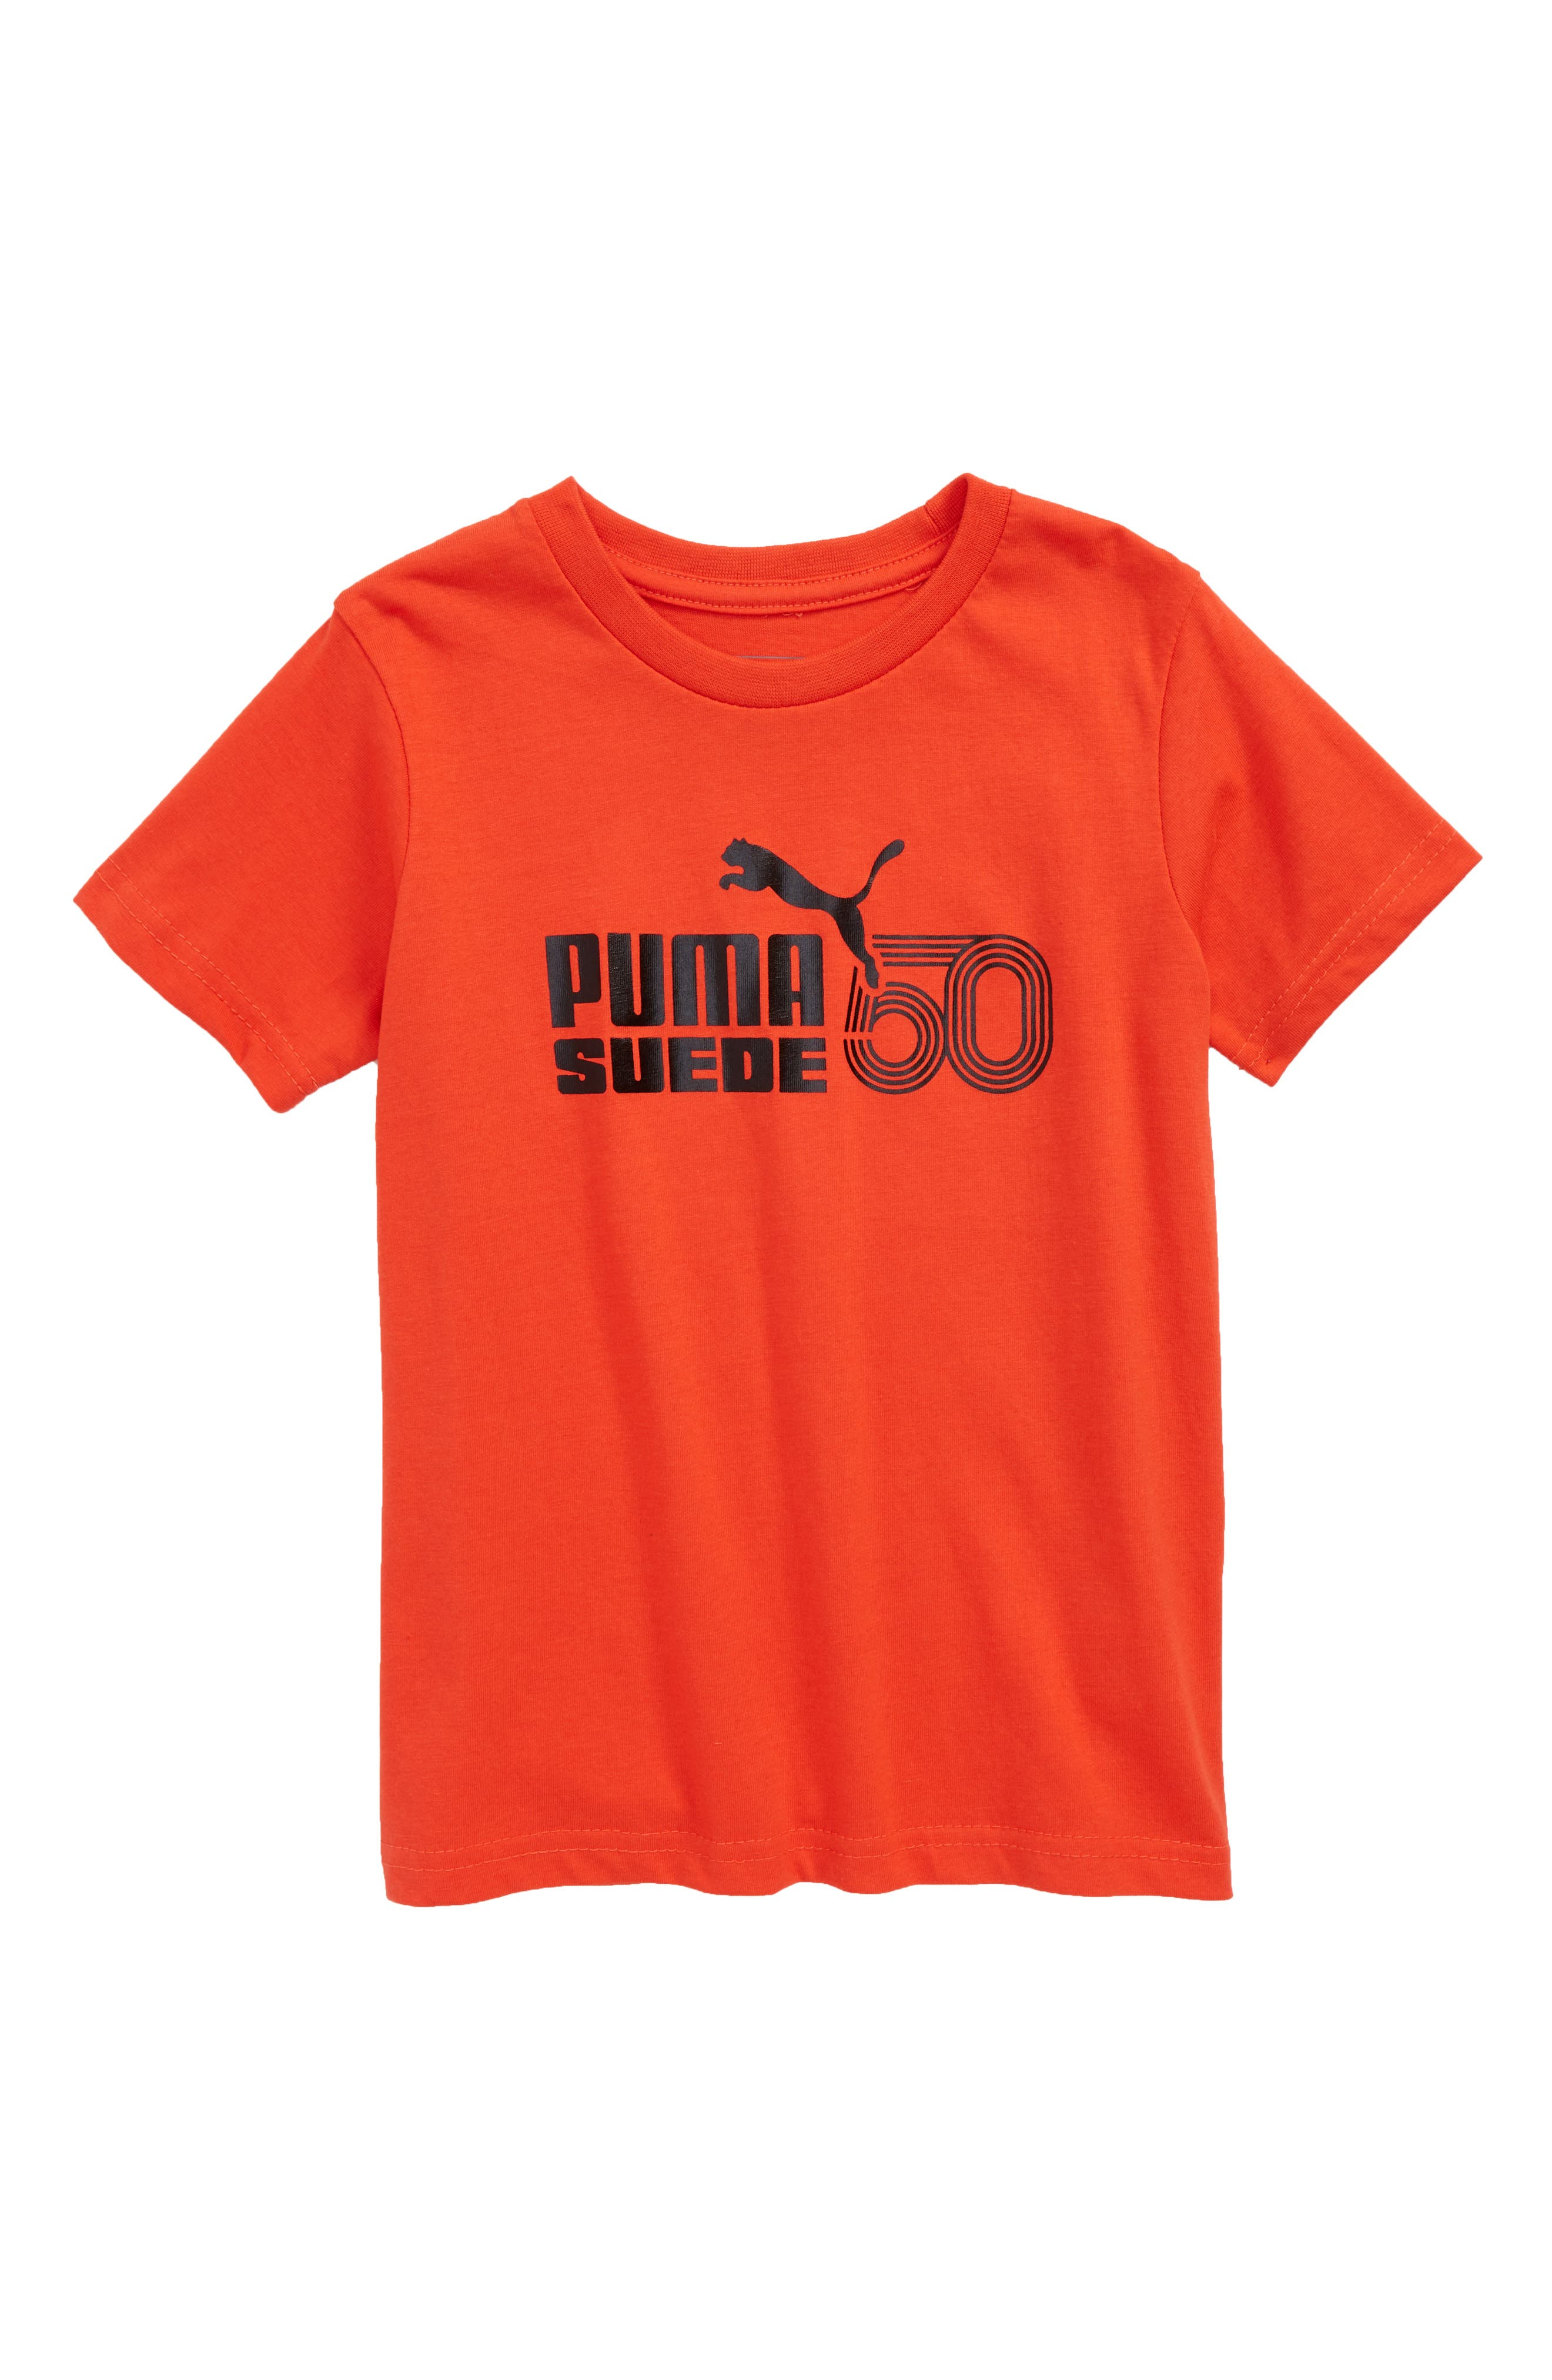 Suede 50th Anniversary Logo T-Shirt,                         Main,                         color, Flame Scarlet